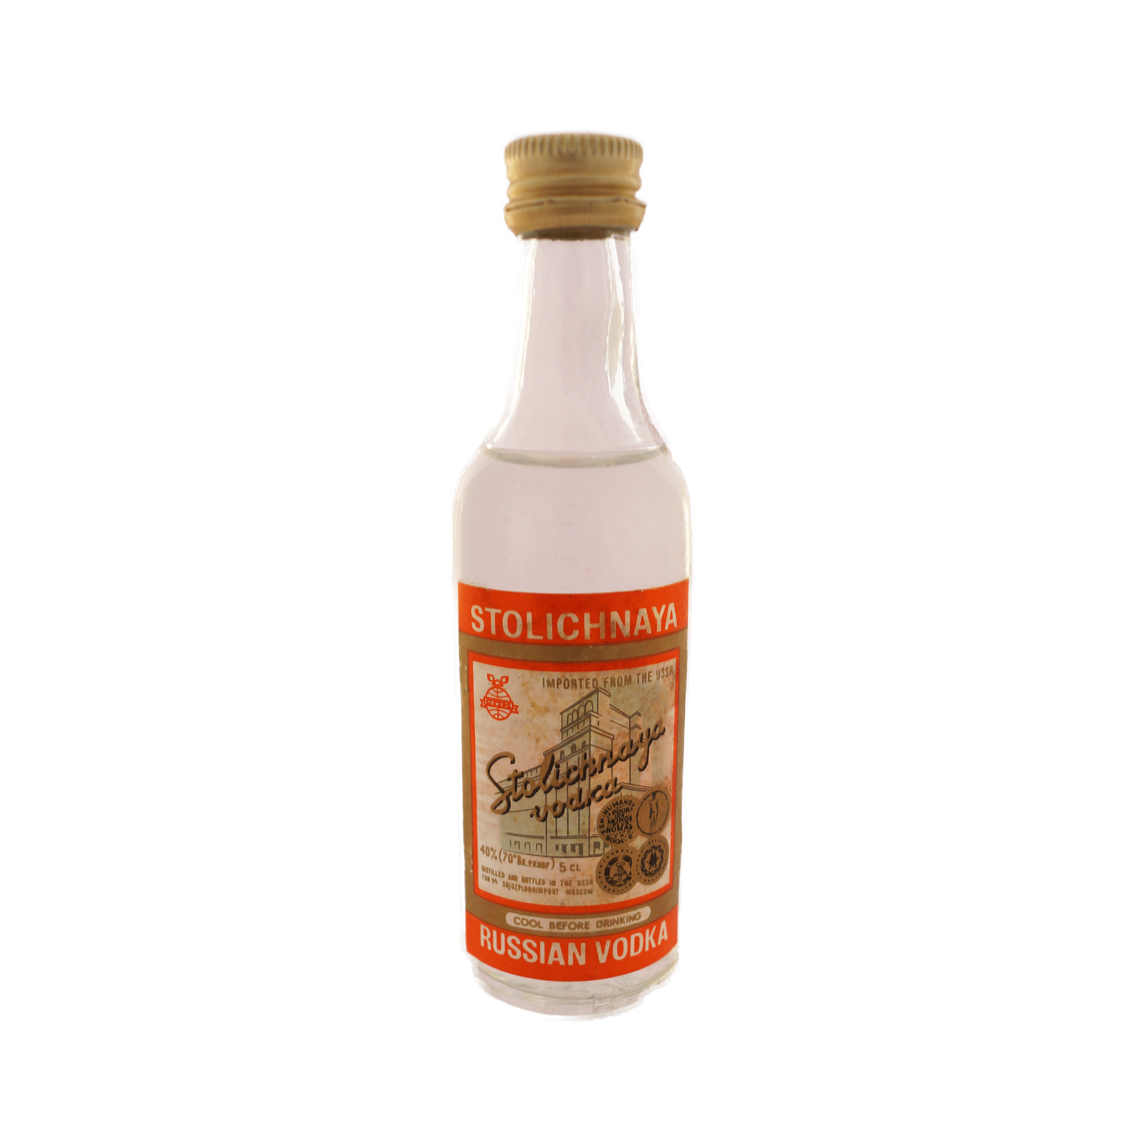 VODKA-STOLICHNAYA-RUSSIAN-VODKA-3